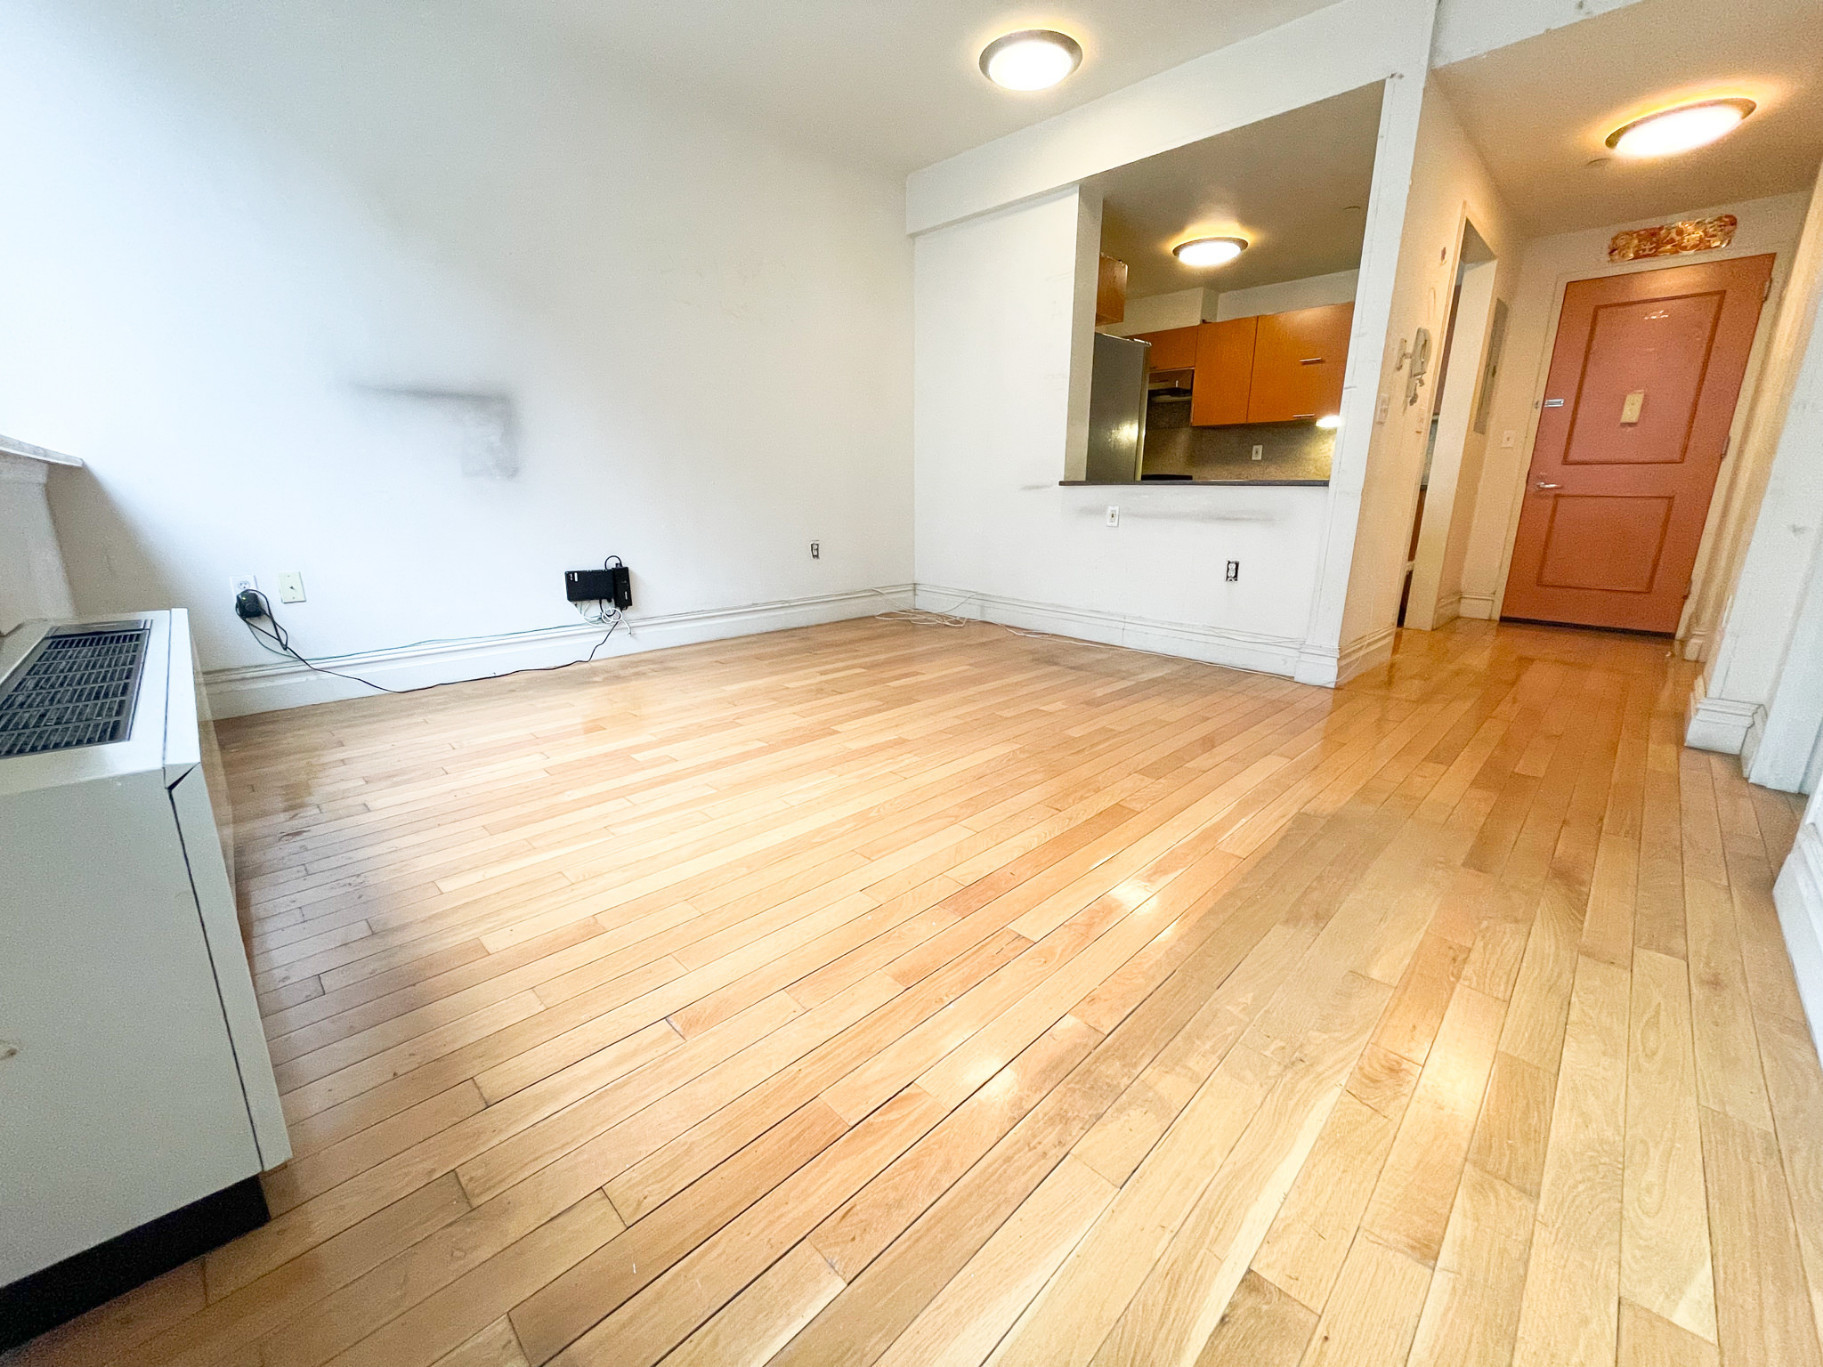 1-Bedroom House In Chinatown